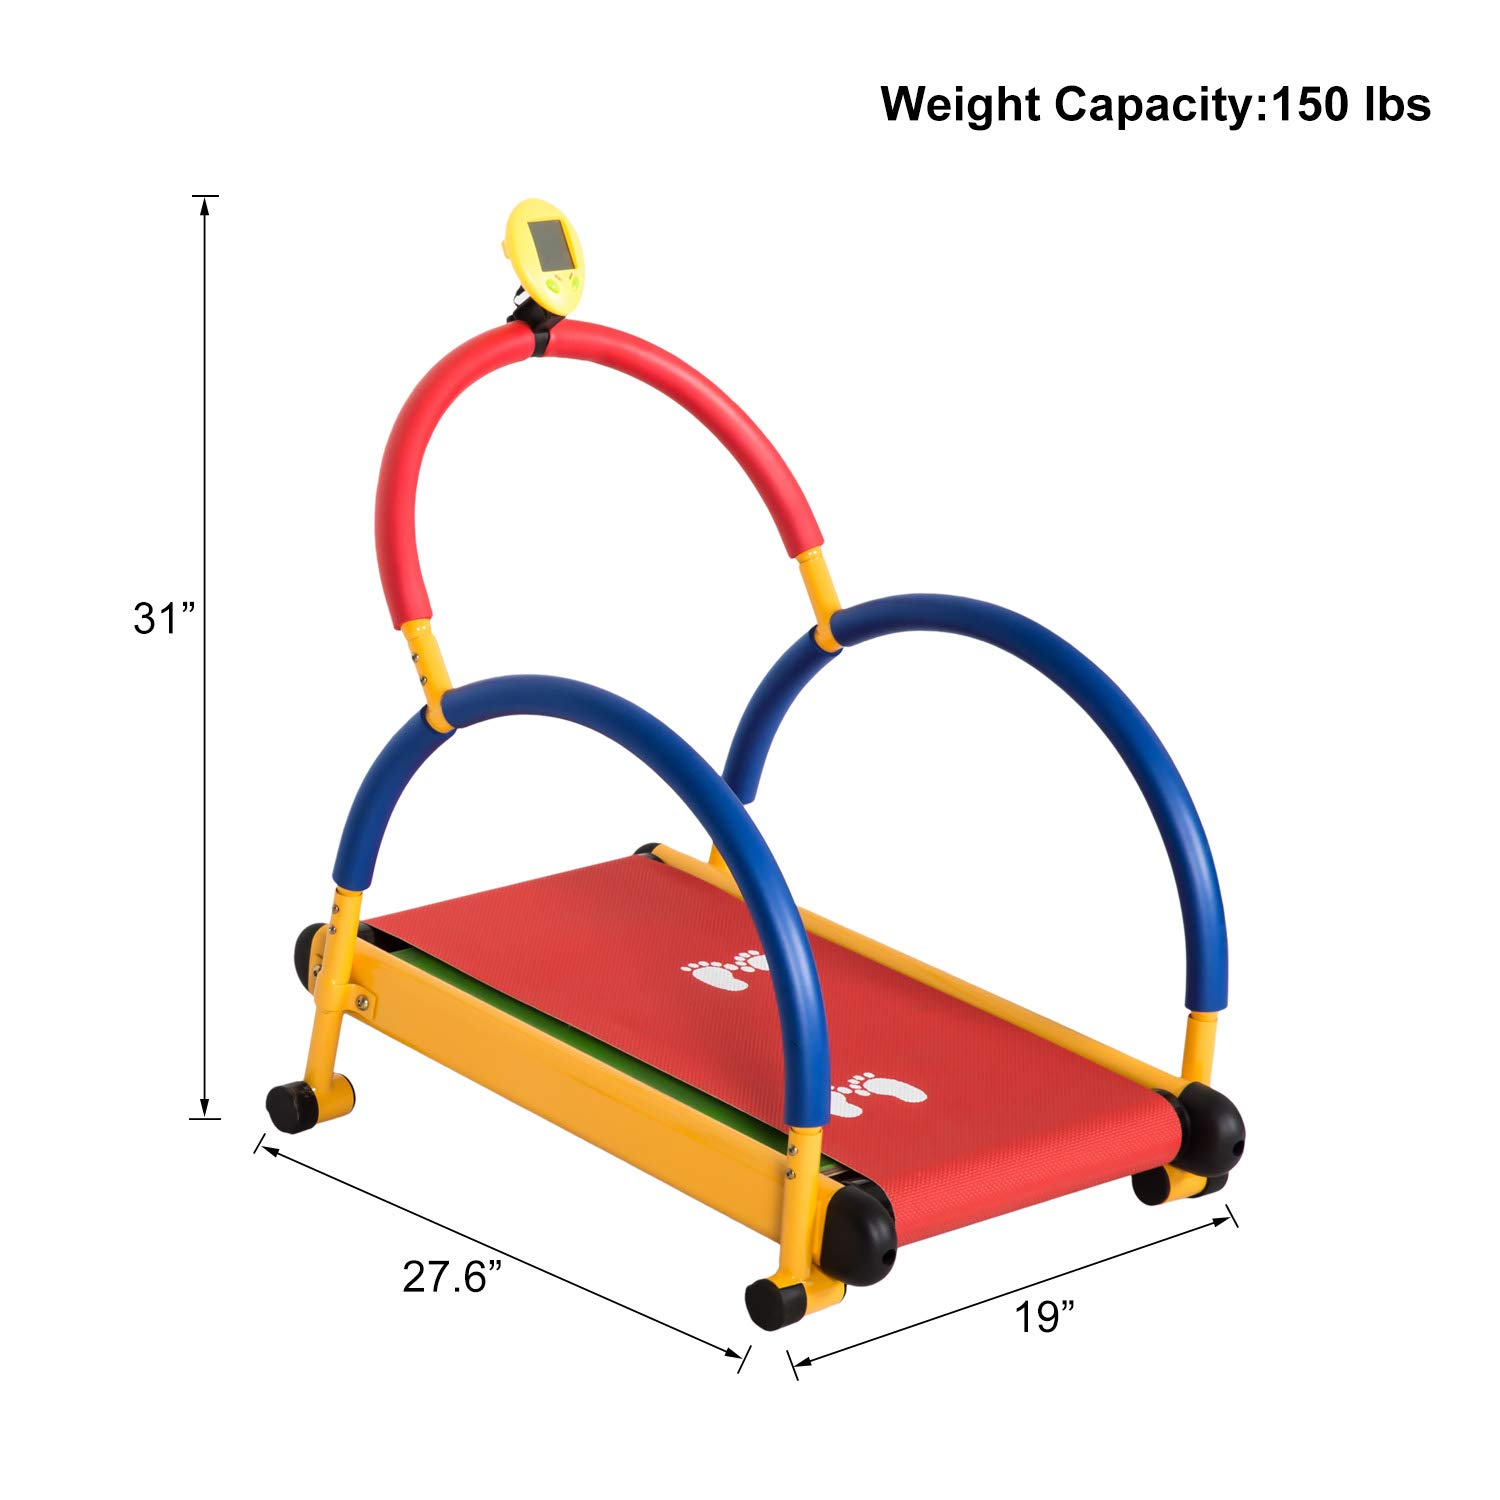 Peach Tree Fun and Fitness Exercise Equipment for Kids Children Twister